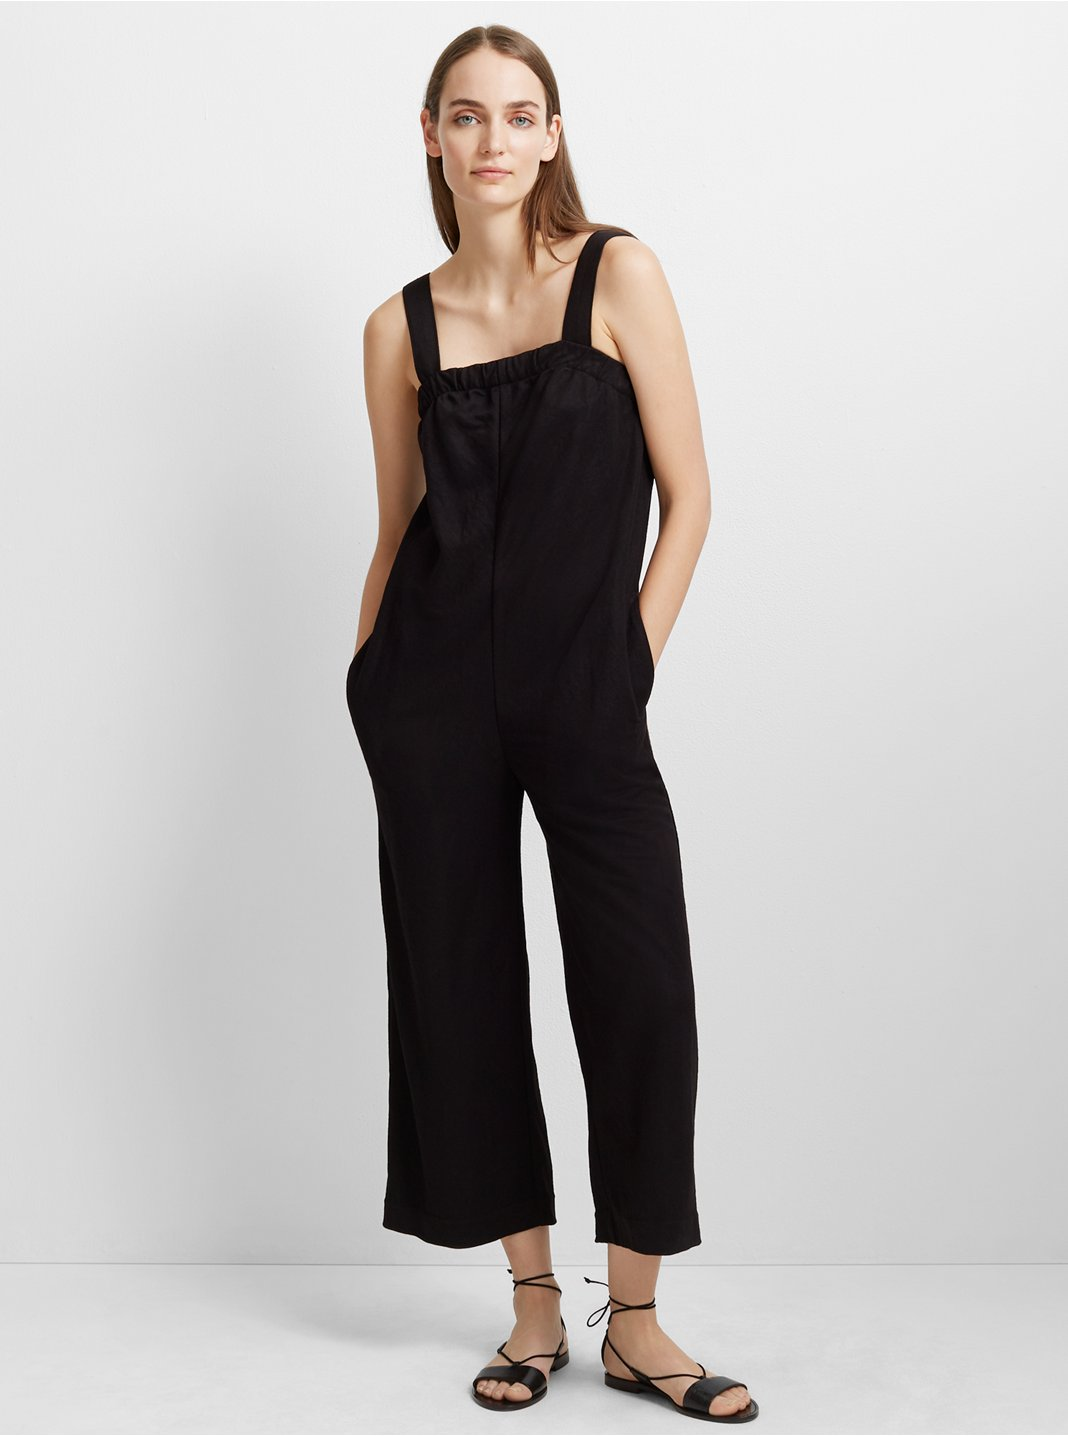 Incah Jumpsuit